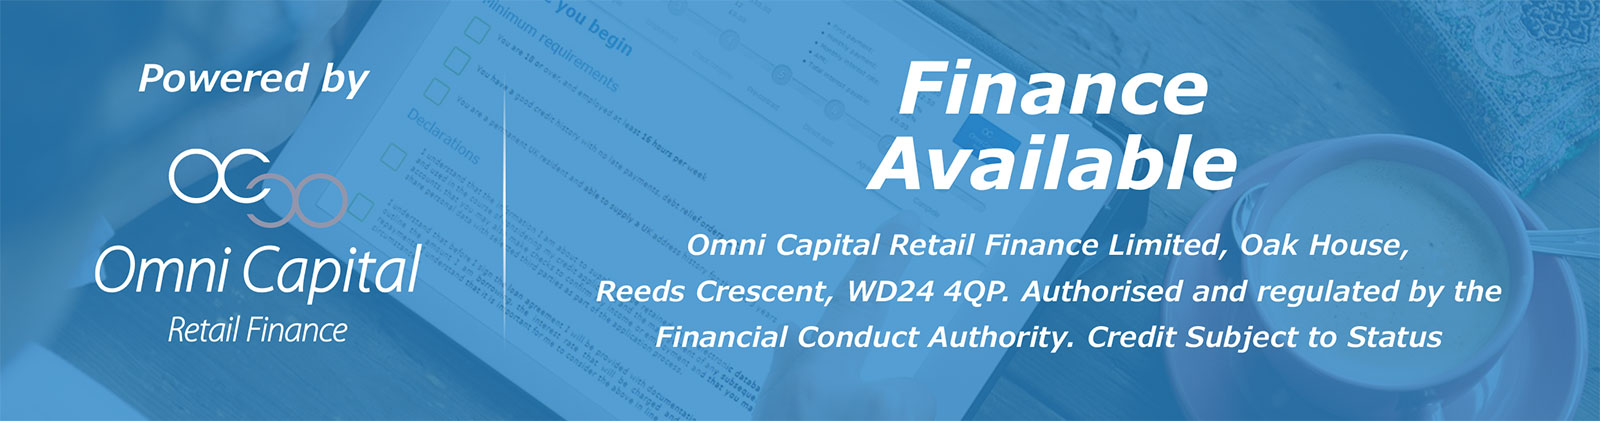 OC Finance now available